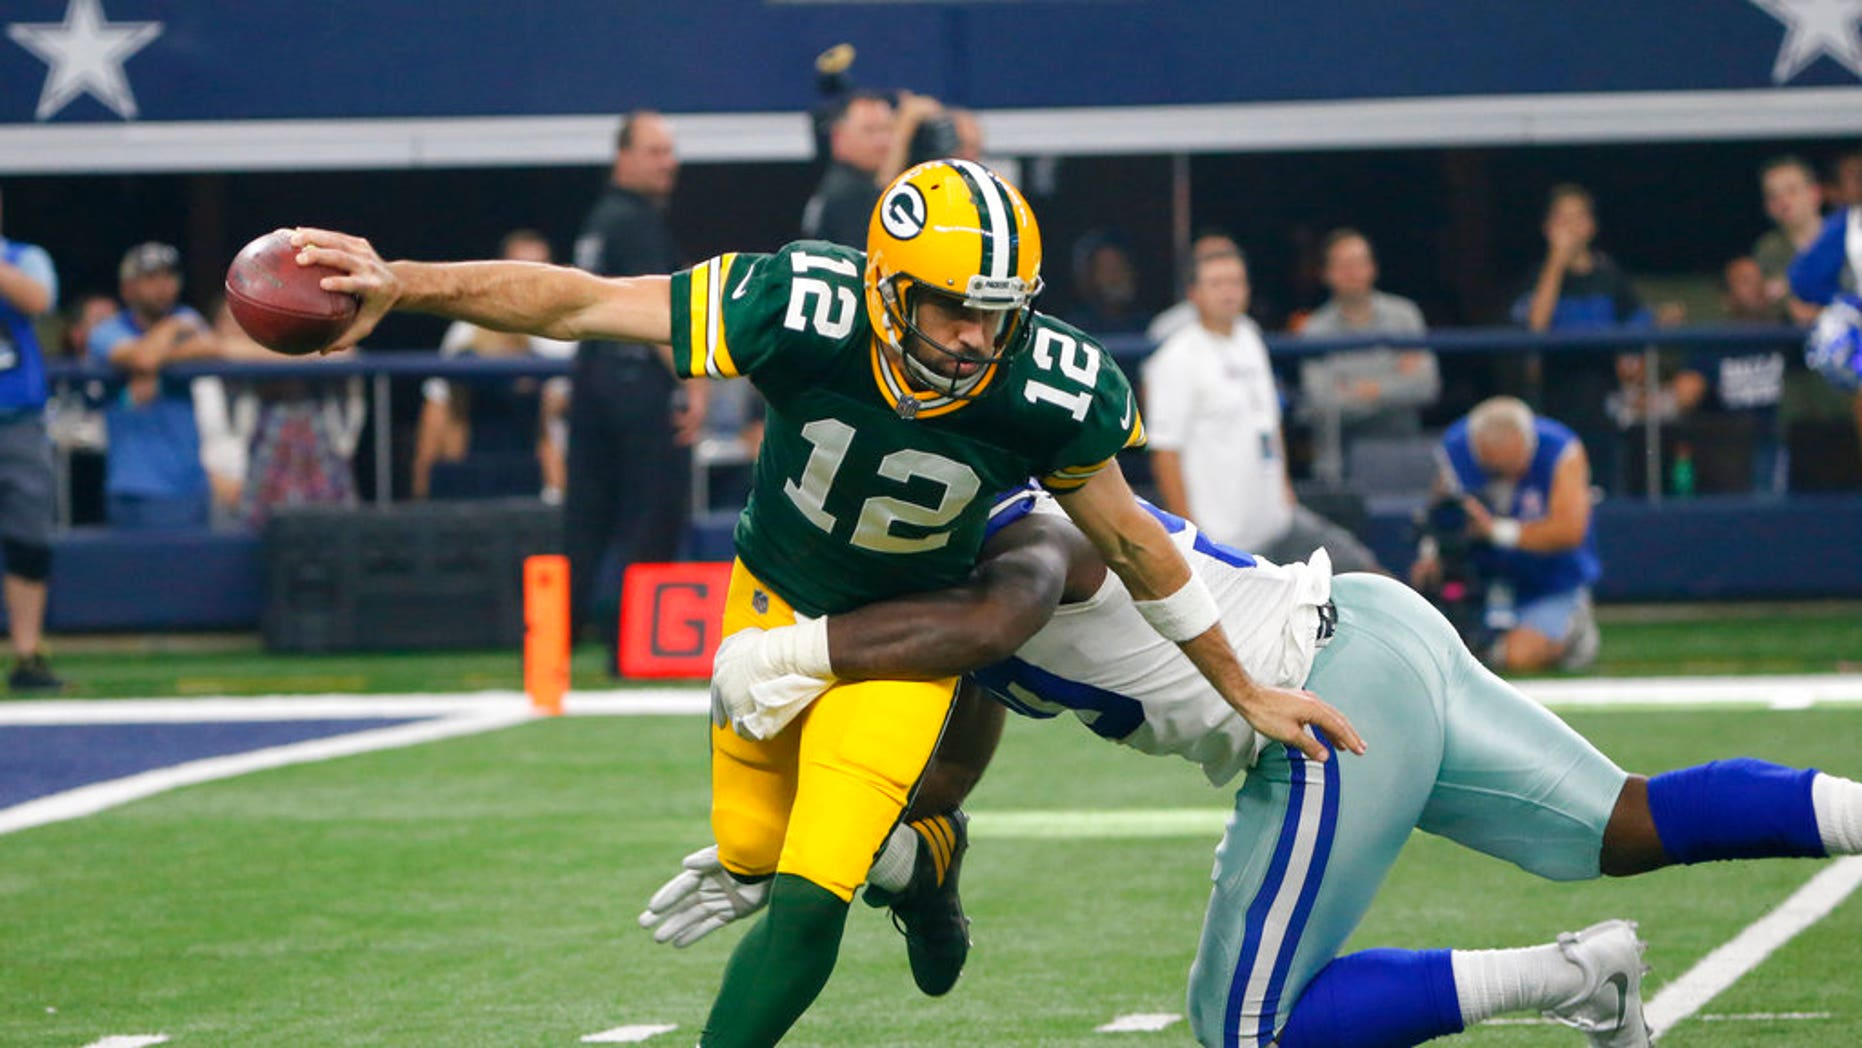 Green Bay Packers quarterback Aaron Rodgers (12) attempts to escape the grasp of Dallas Cowboys defensive end DeMarcus Lawrence (90) before throwing a pass during an NFL football game, Sunday, Oct. 8, 2017, in Arlington, Texas. (AP Photo/Roger Steinman)